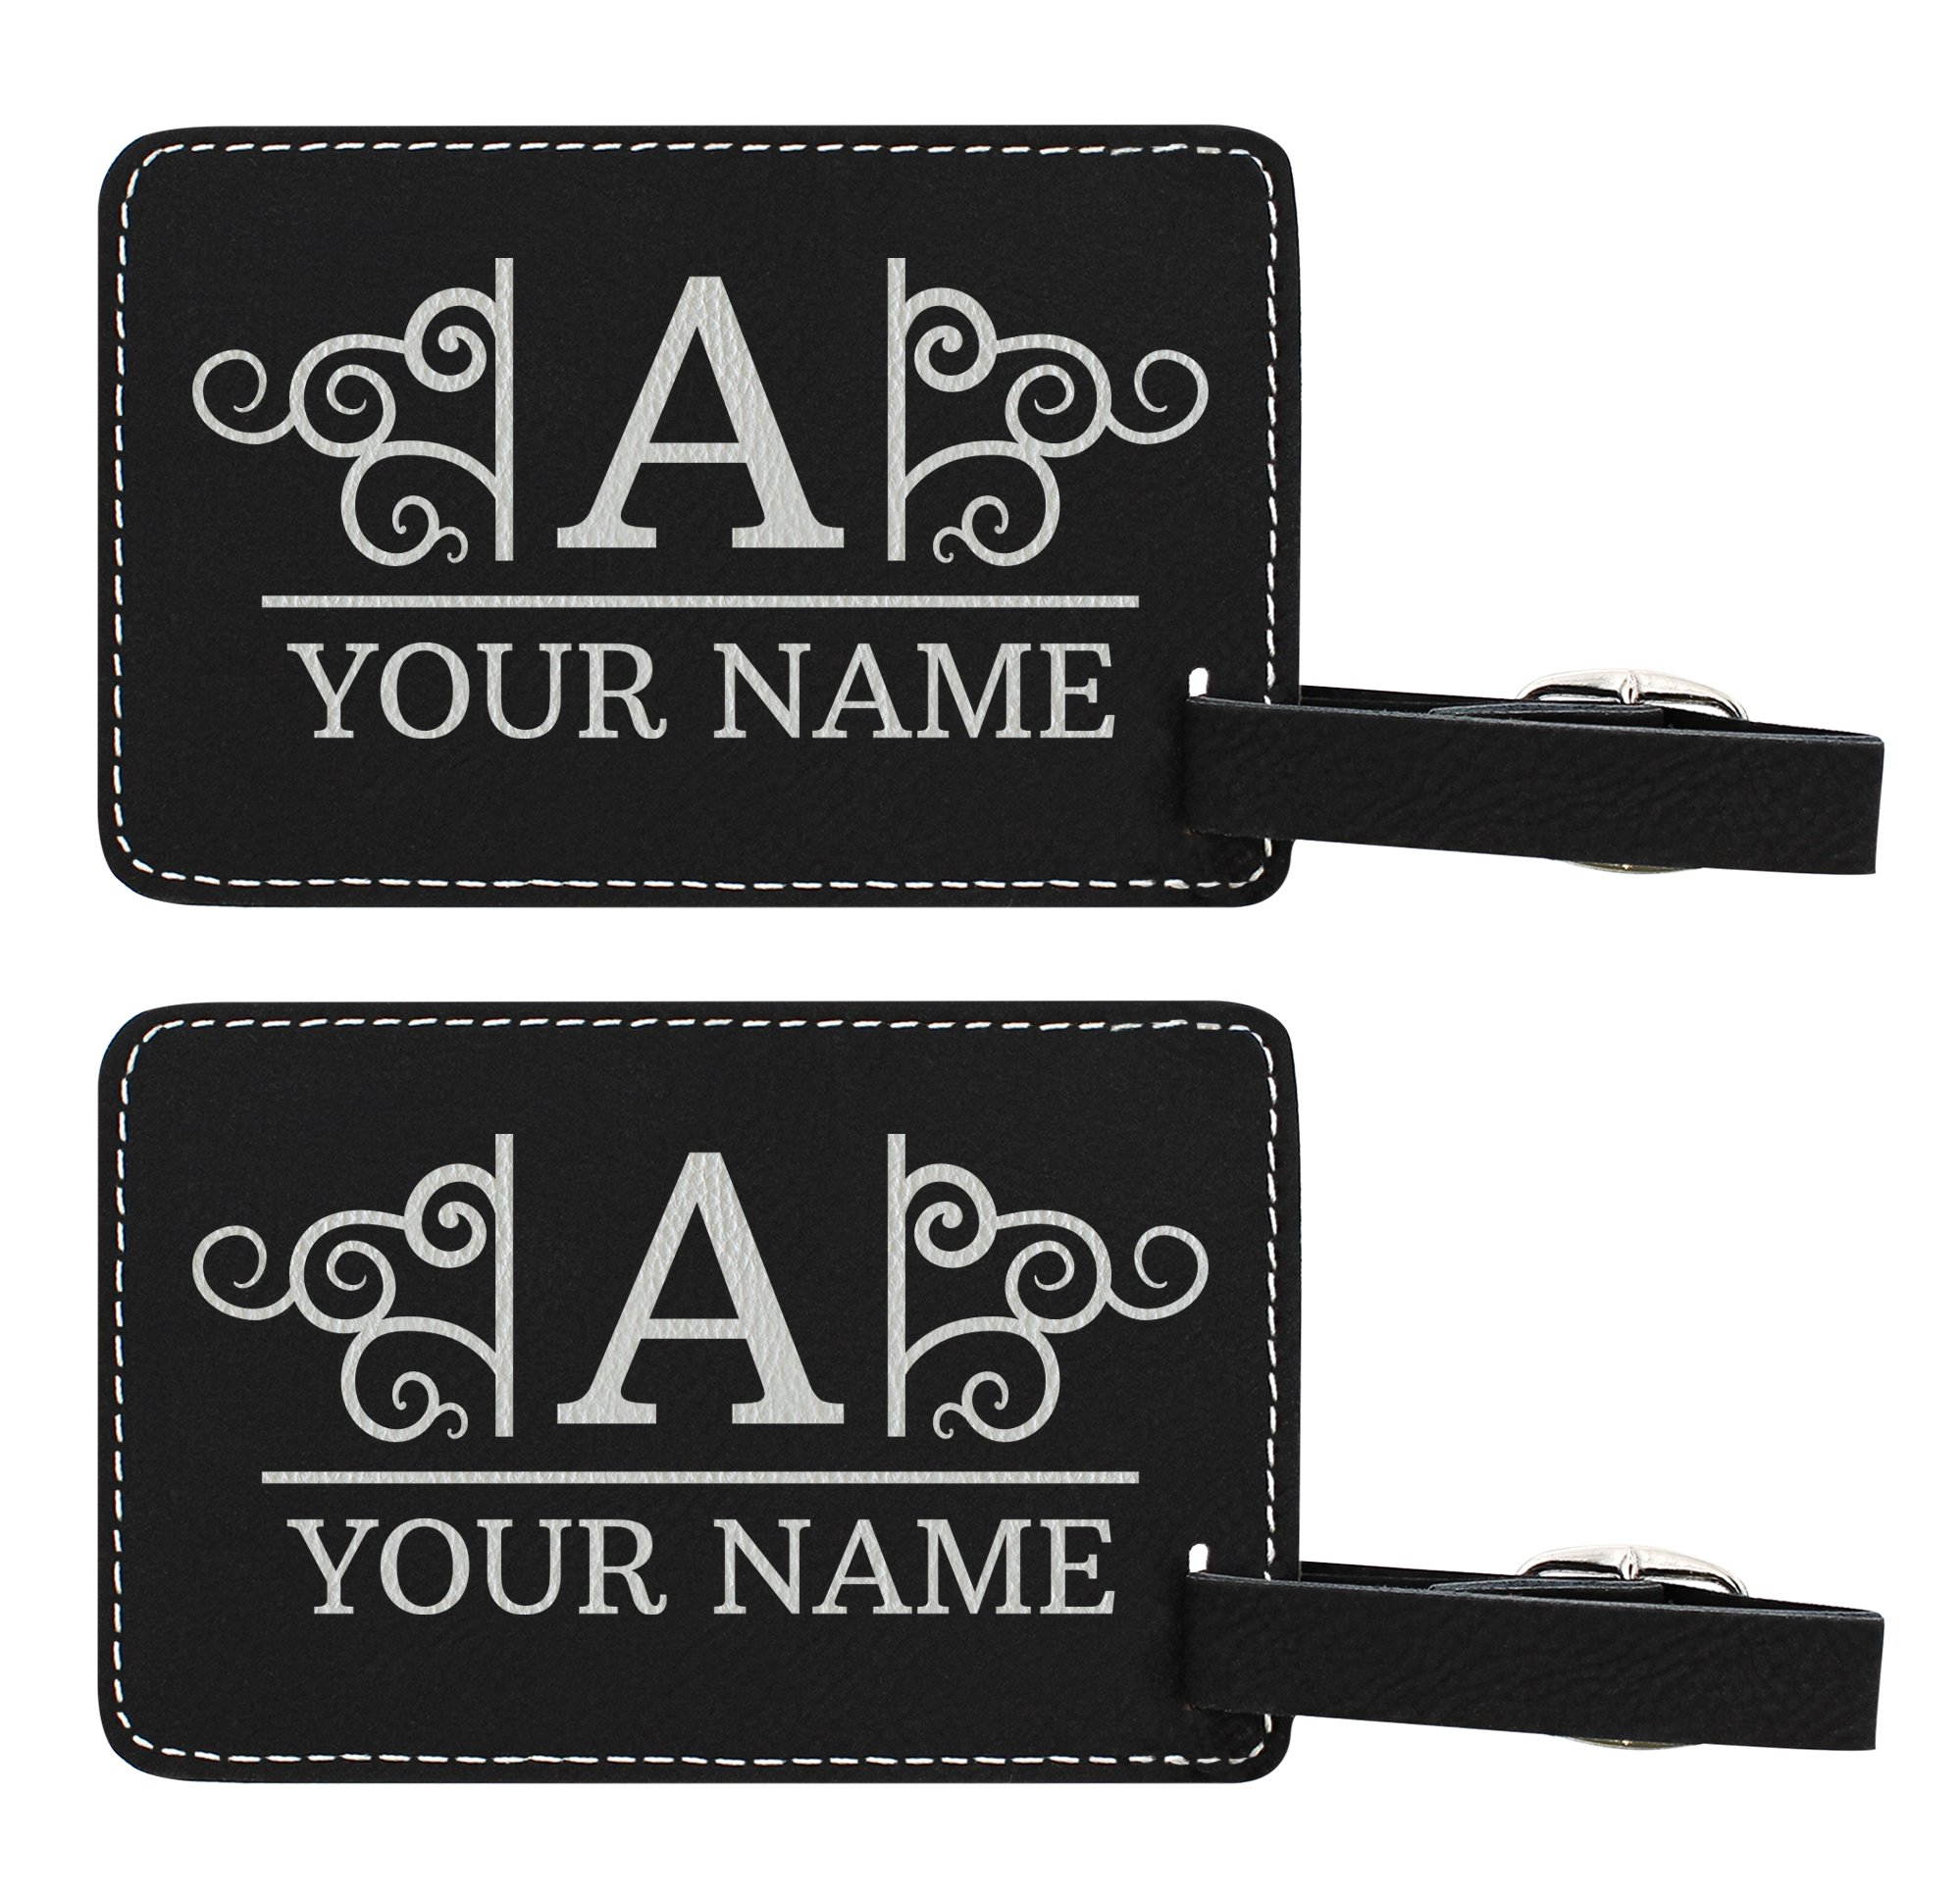 Personalized Luggage Tags Custom Initial & Name Personalized Gifts for Travelers Personalized 2-pack Laser Engraved Leather Luggage Tags Black